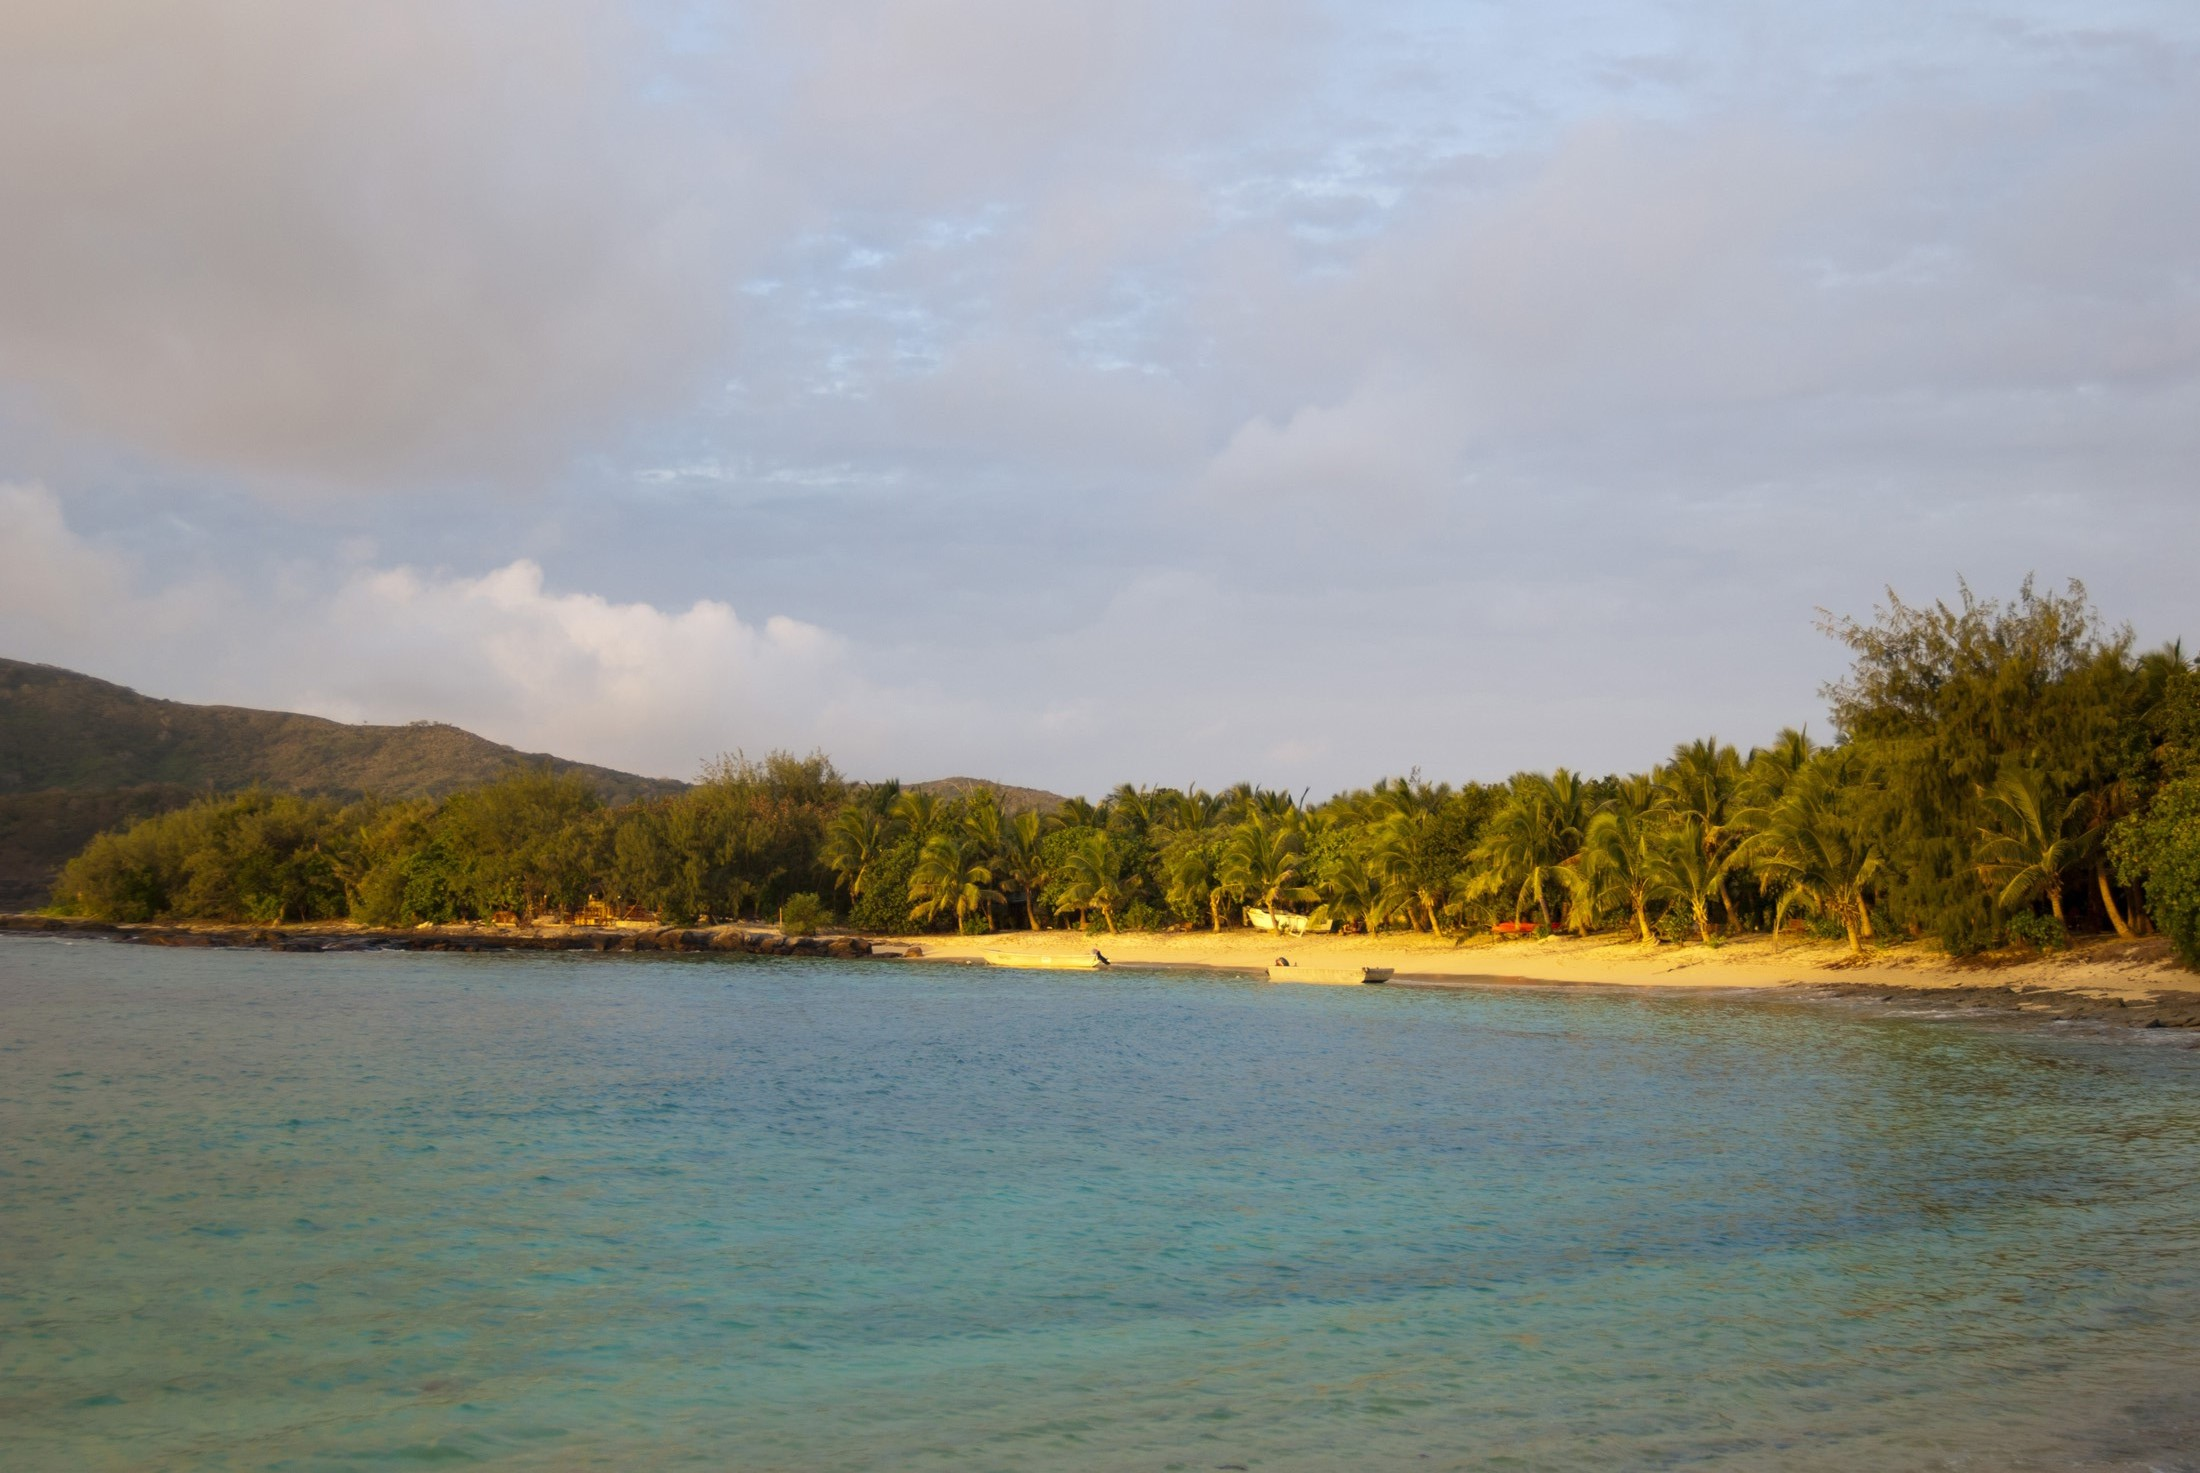 View over a calm sea to a sunset on a tropical beach with the golden glow lighting the sand and lush green vegetation